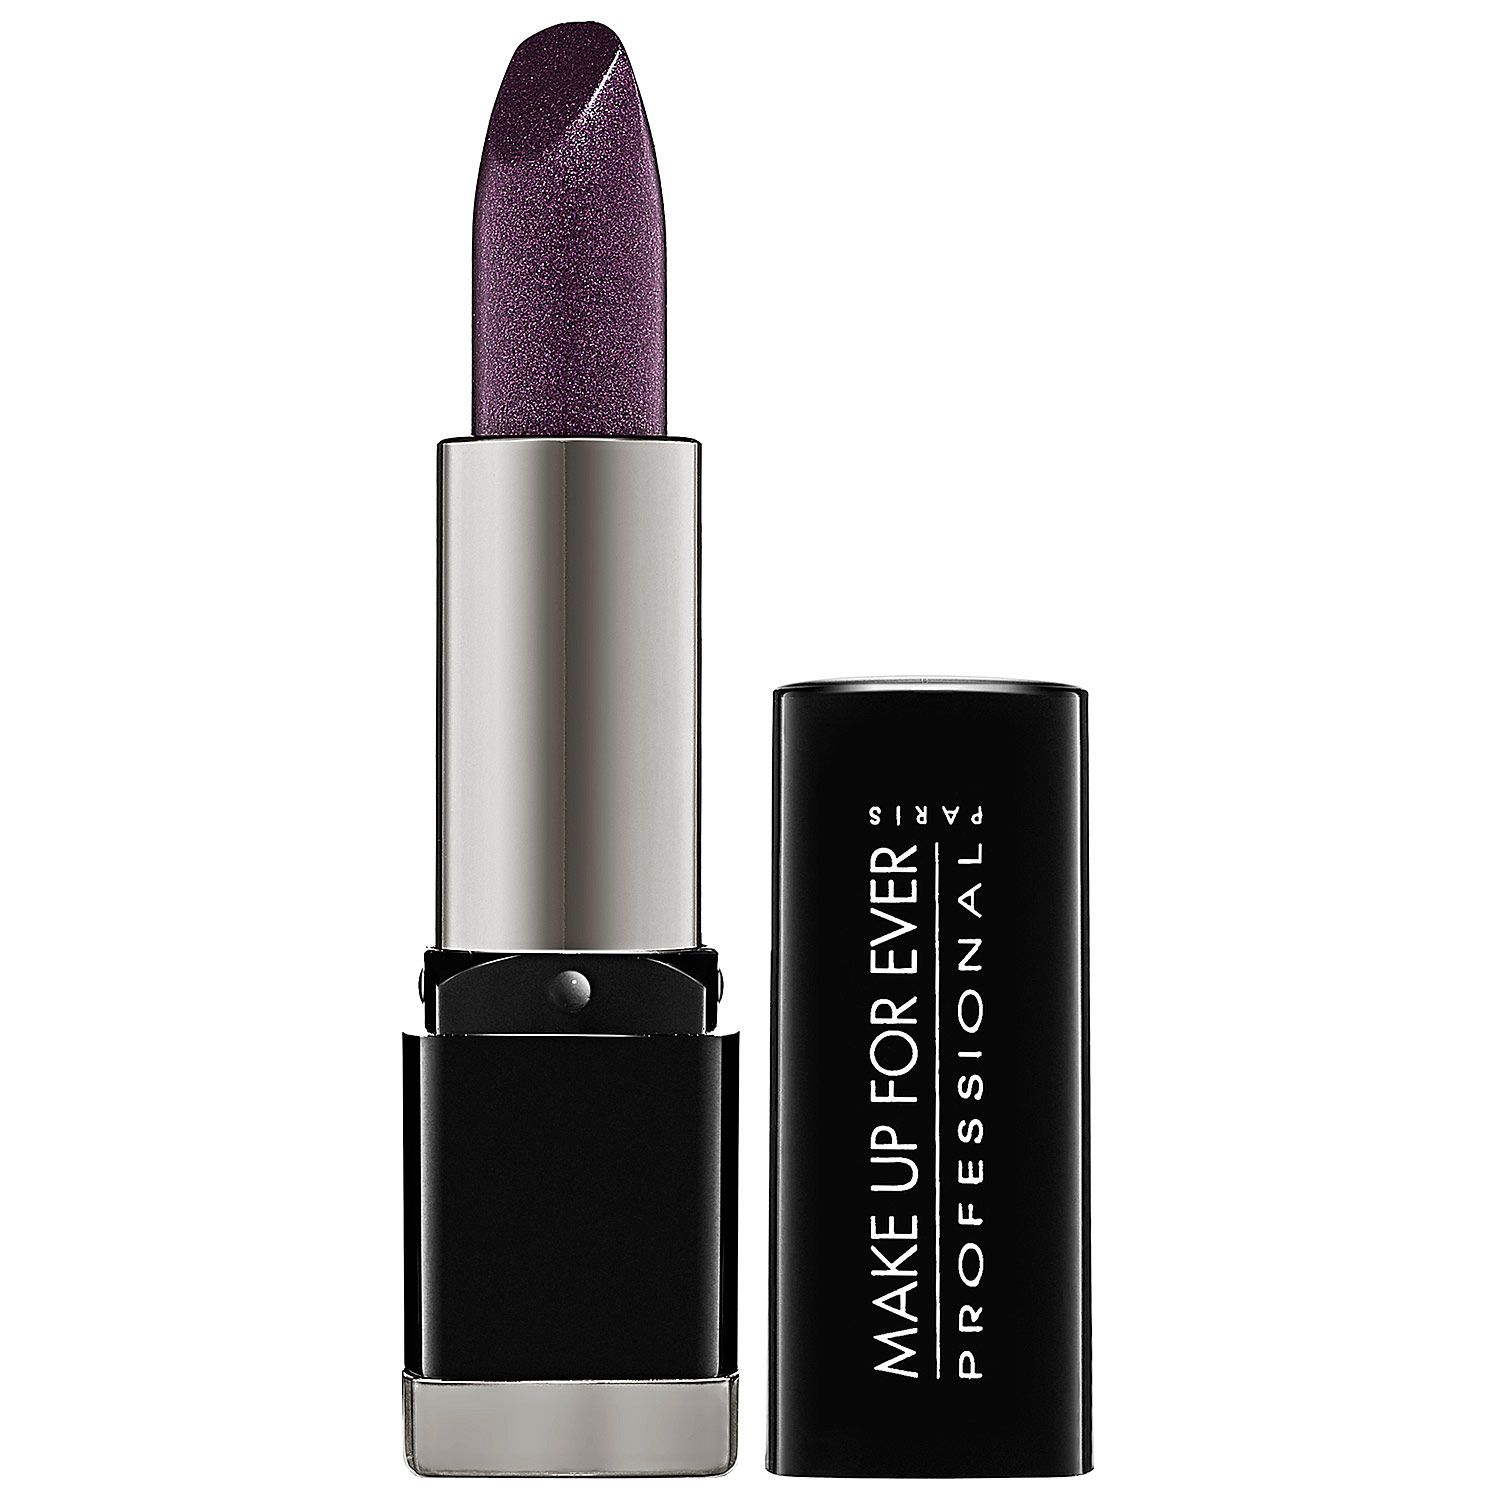 Rouge Artist Intense MAKE UP FOR EVER Sephora (With